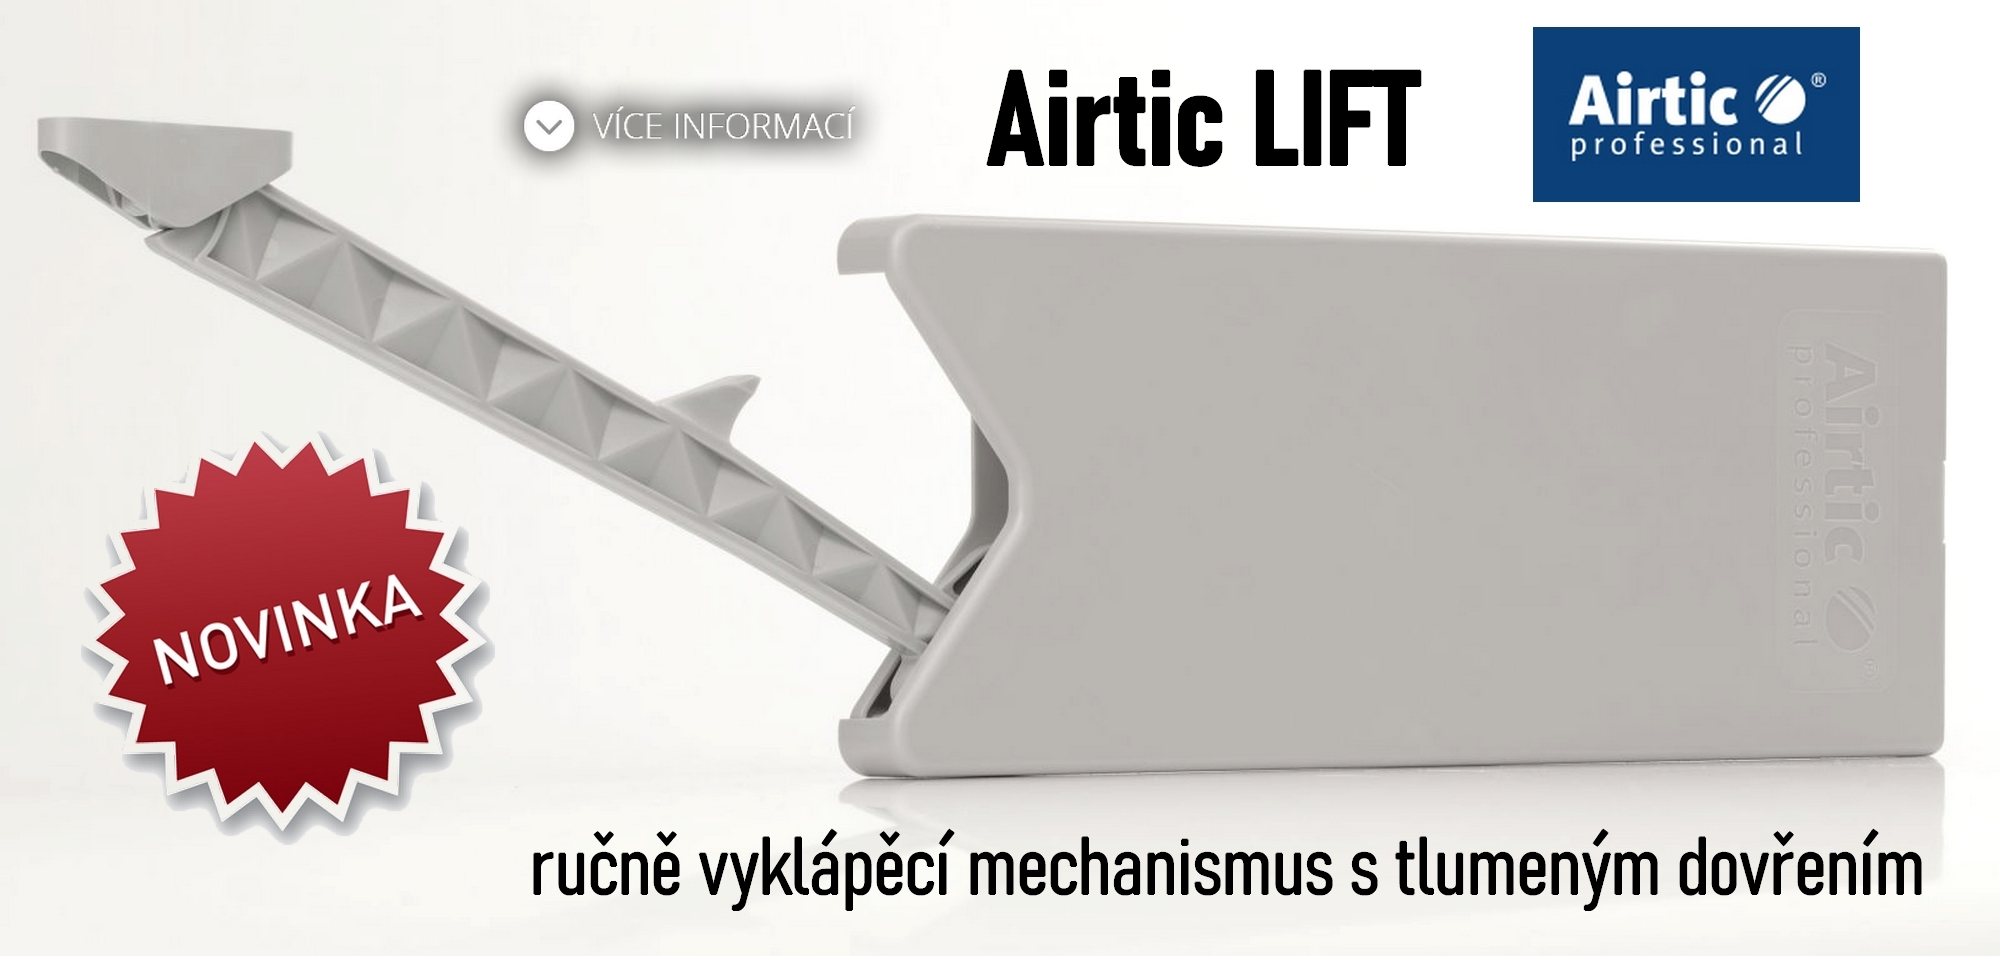 AirticLIFT